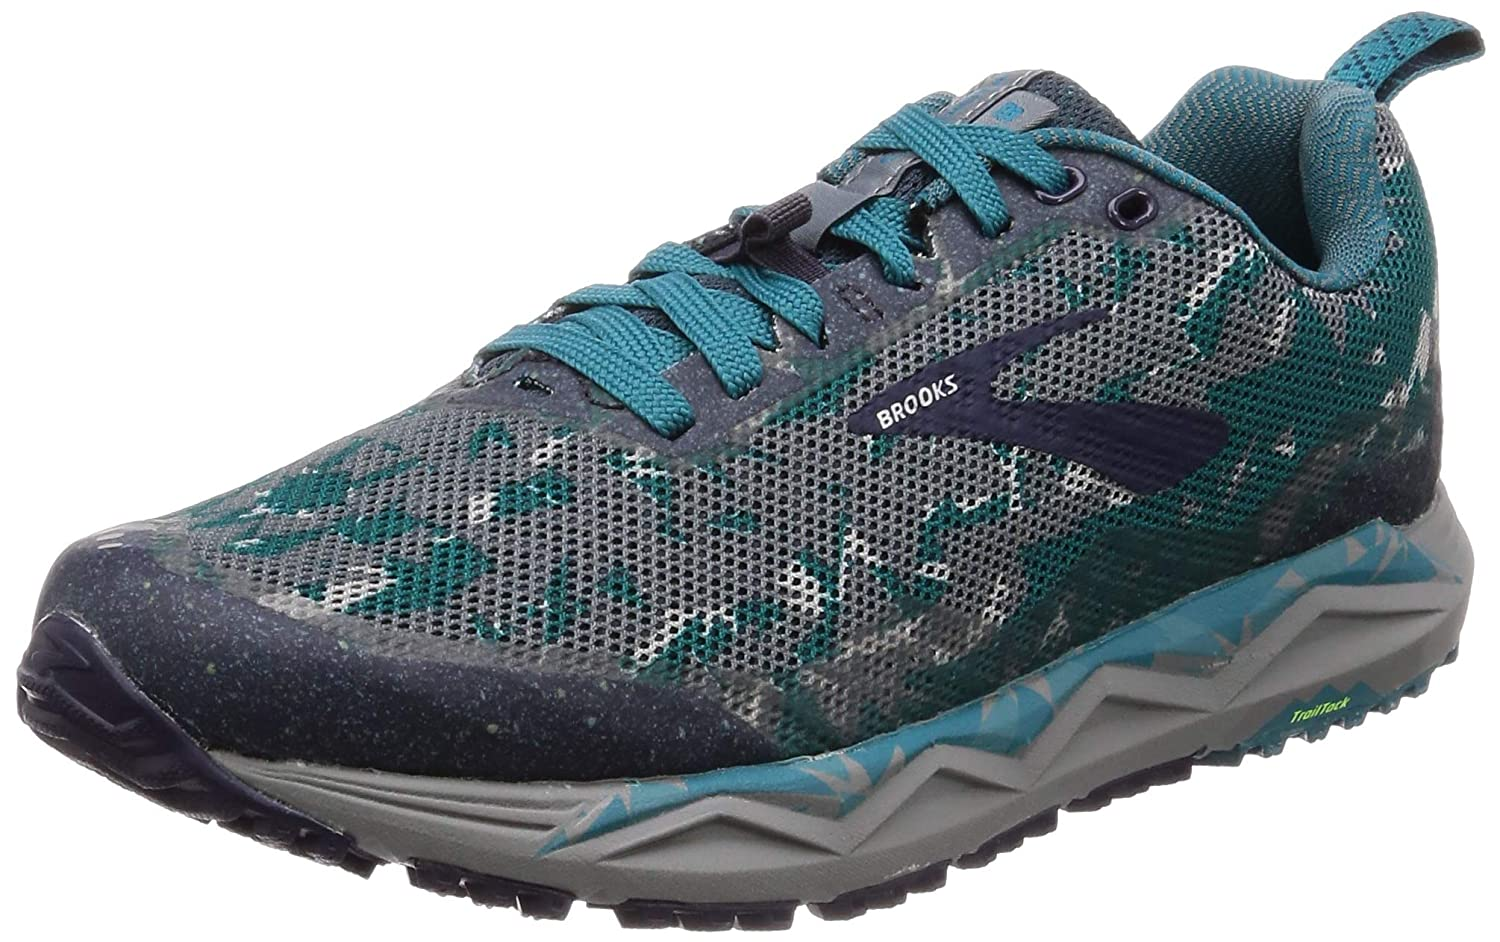 bluee Grey Navy Brooks Men's Caldera 3 Trail Running shoes